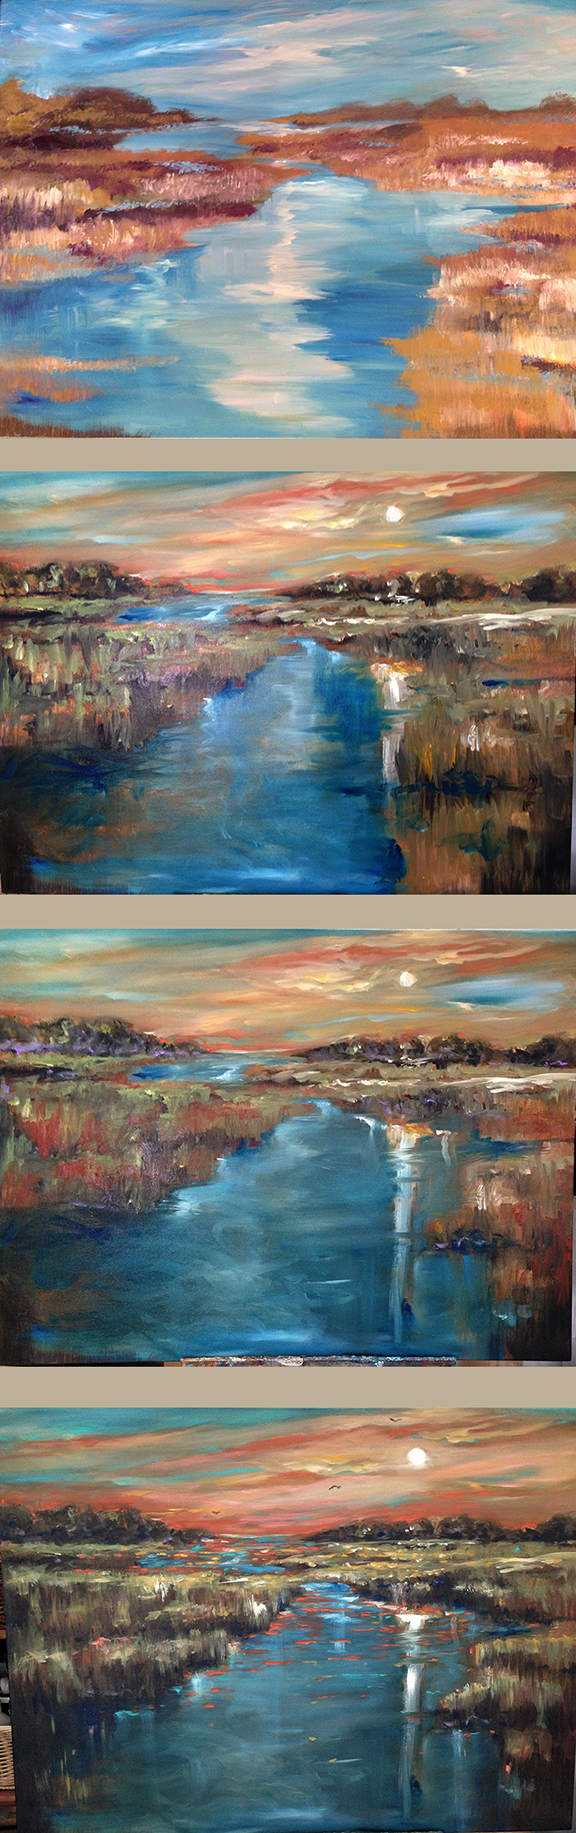 Waterway sunset progression